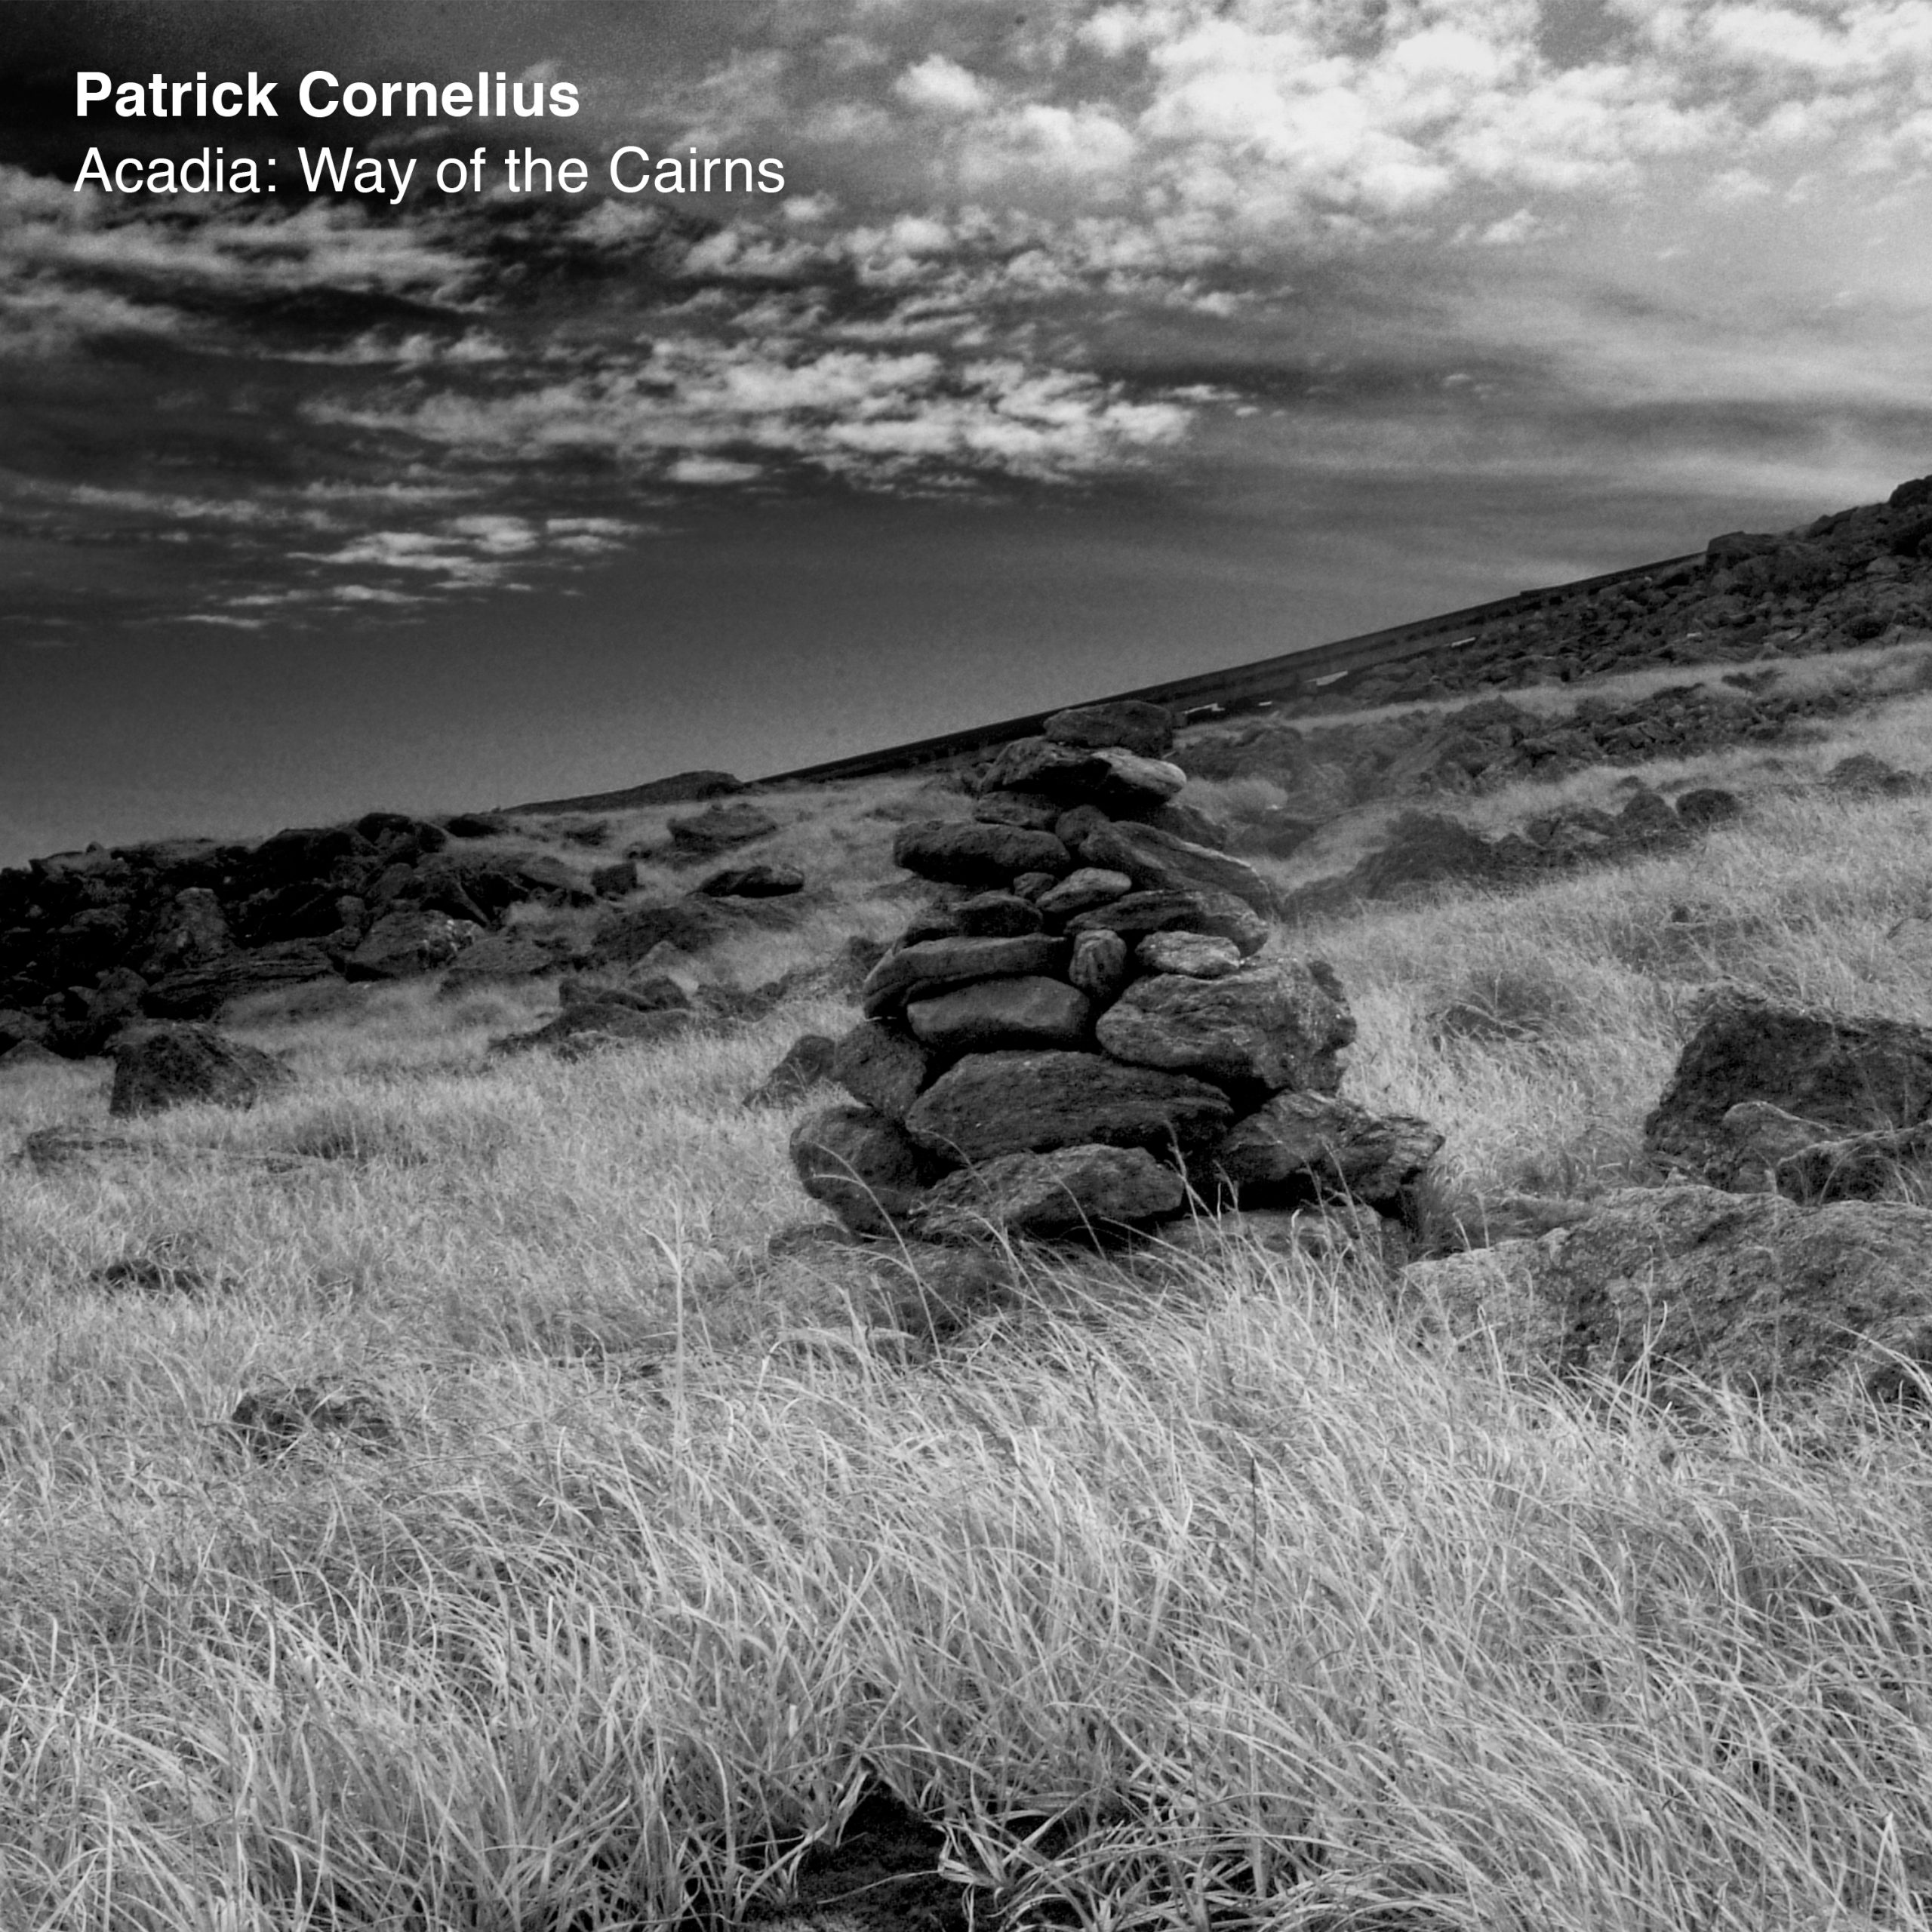 NEW RELEASE: Patrick Cornelius' 'Acadia: Way of the Cairns' is out October 30, 2020 via Whirlwind Recordings